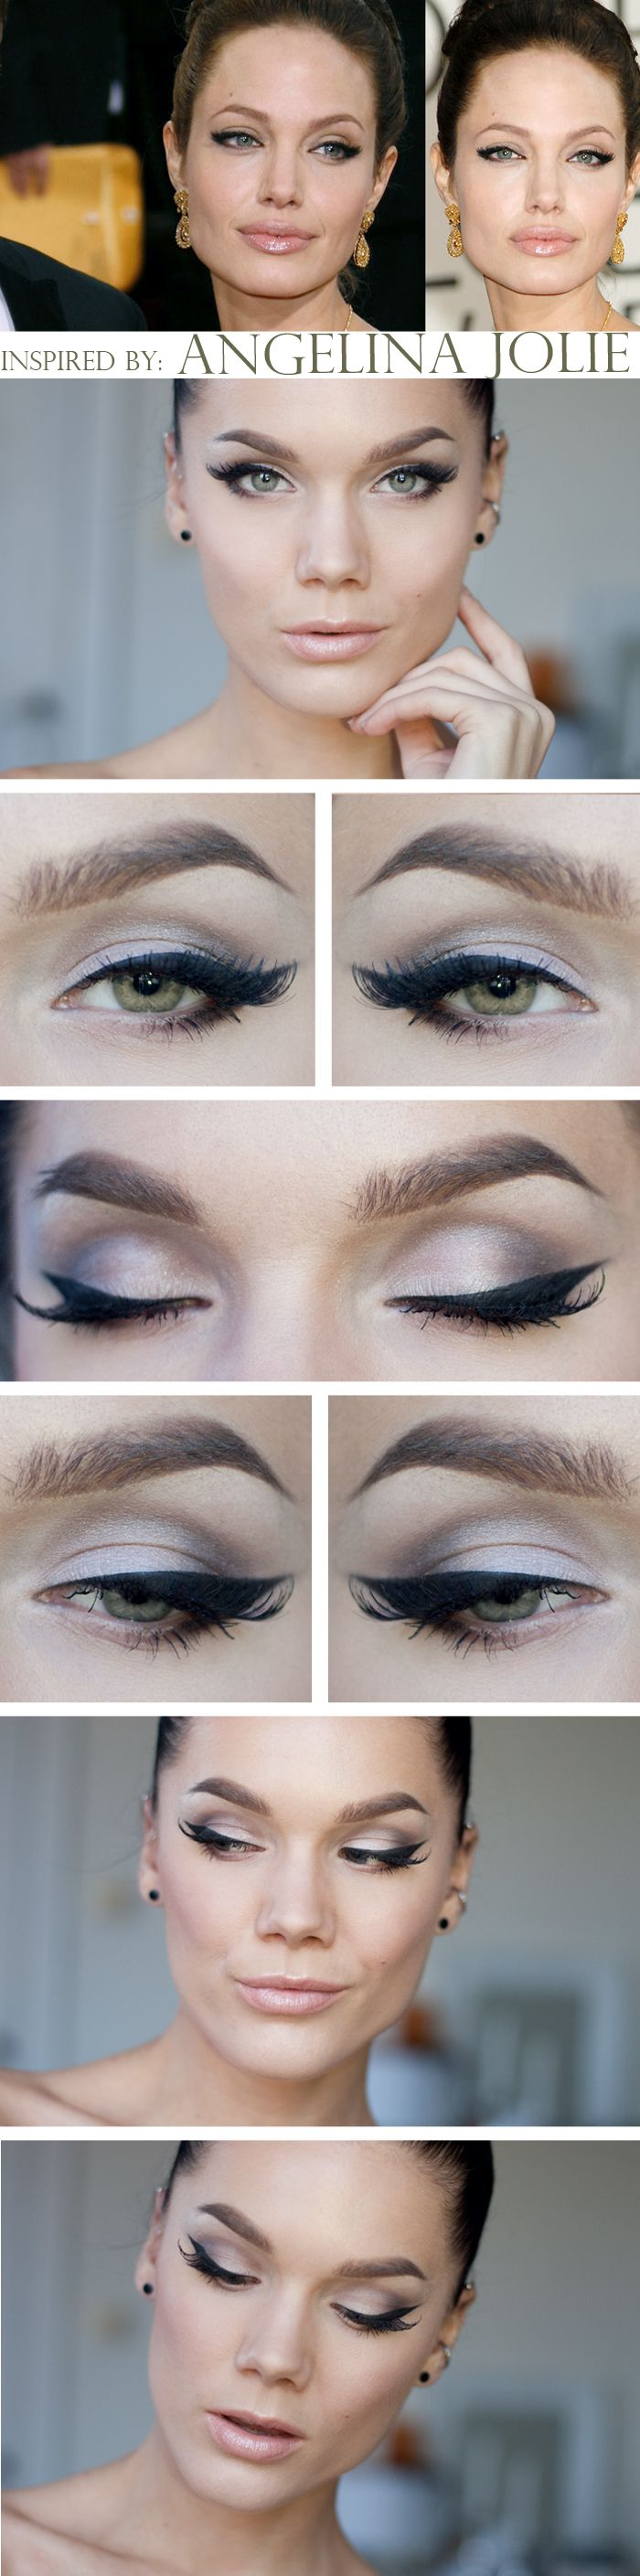 "Today's Look : ""Angelina Jolie Cat eyes"" -Linda Hallberg (Linda did an amazing job recreating this iconic look... this is simply stunning... no one does a cat eye like Linda Hallberg) 10/20/13"